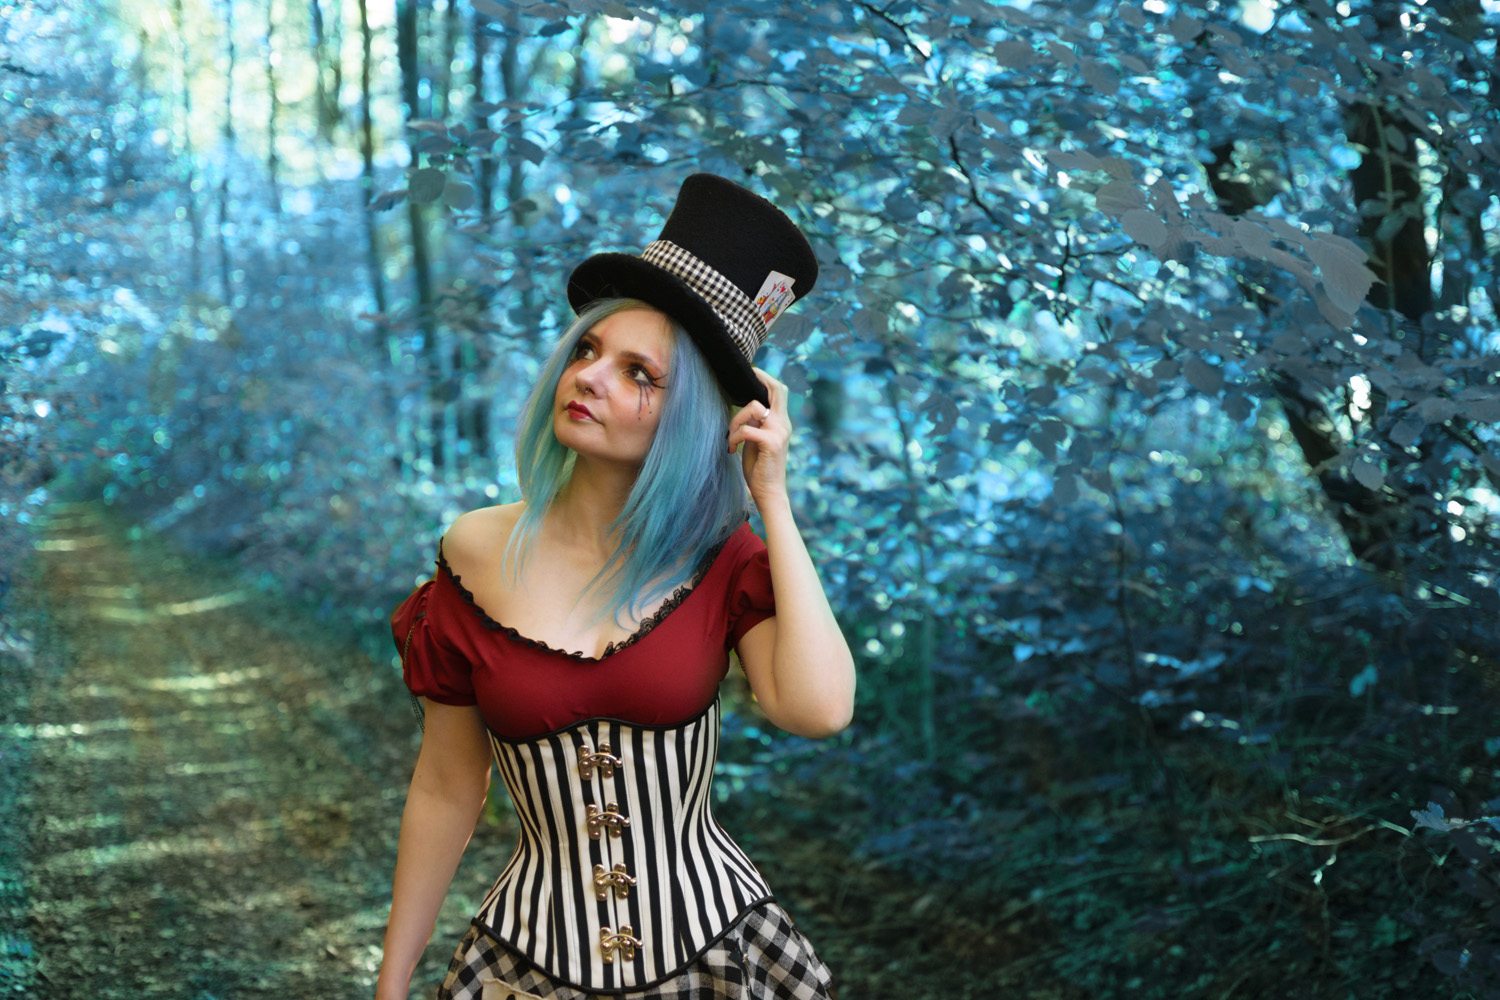 We start October with a new look. Iu0027m aware that it could almost looks like an Halloween costume but it wasnu0027t my original intention.  sc 1 st  Darkrevette & Krevette in Wonderland ~ Darkrevette - Alternative Fashion Artistic ...